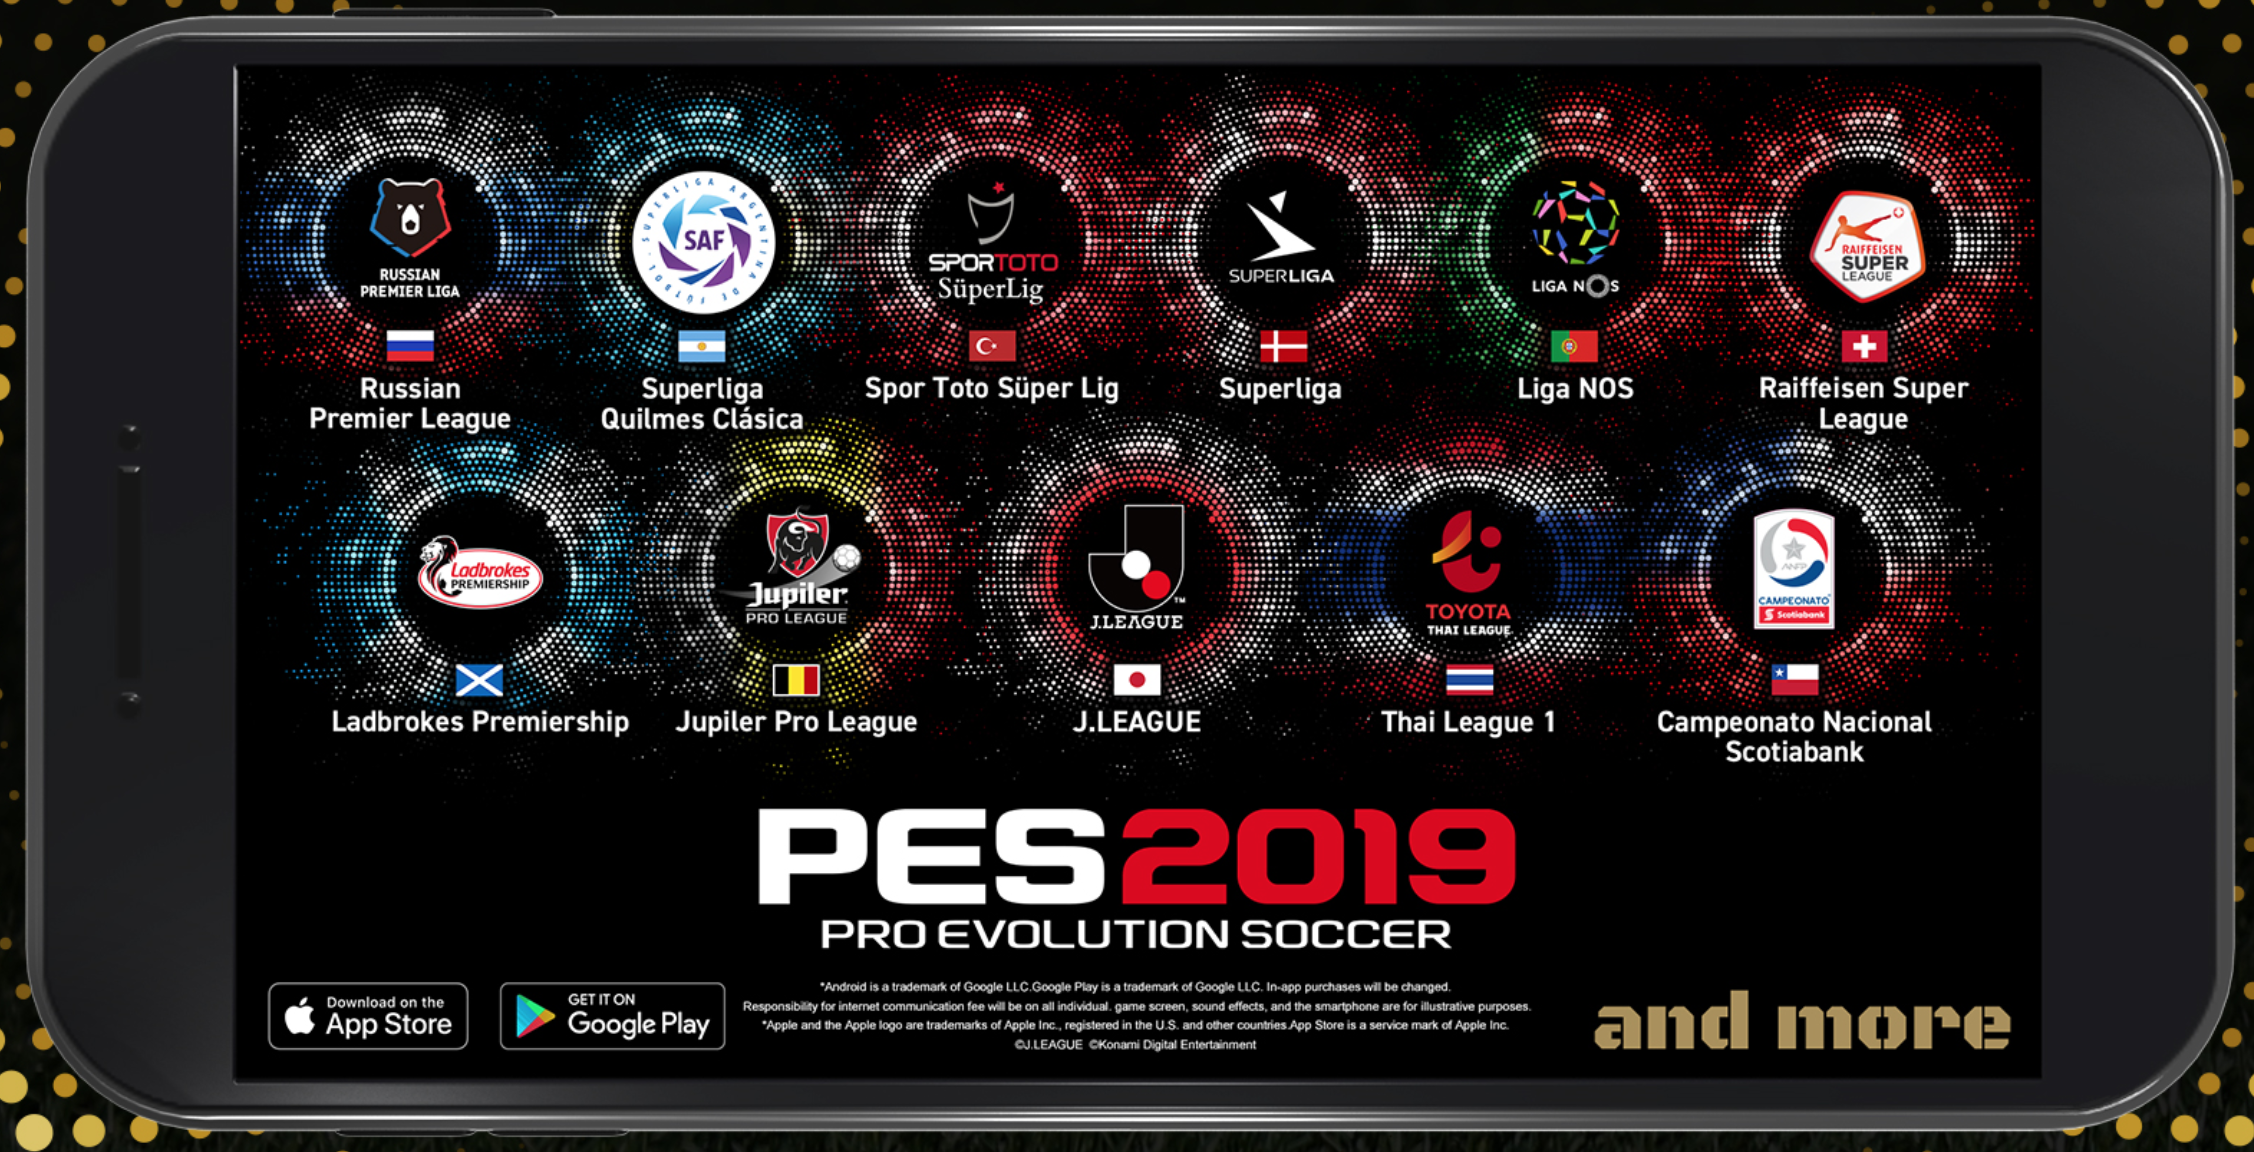 TGS 2018: PES mobile game to be updated to